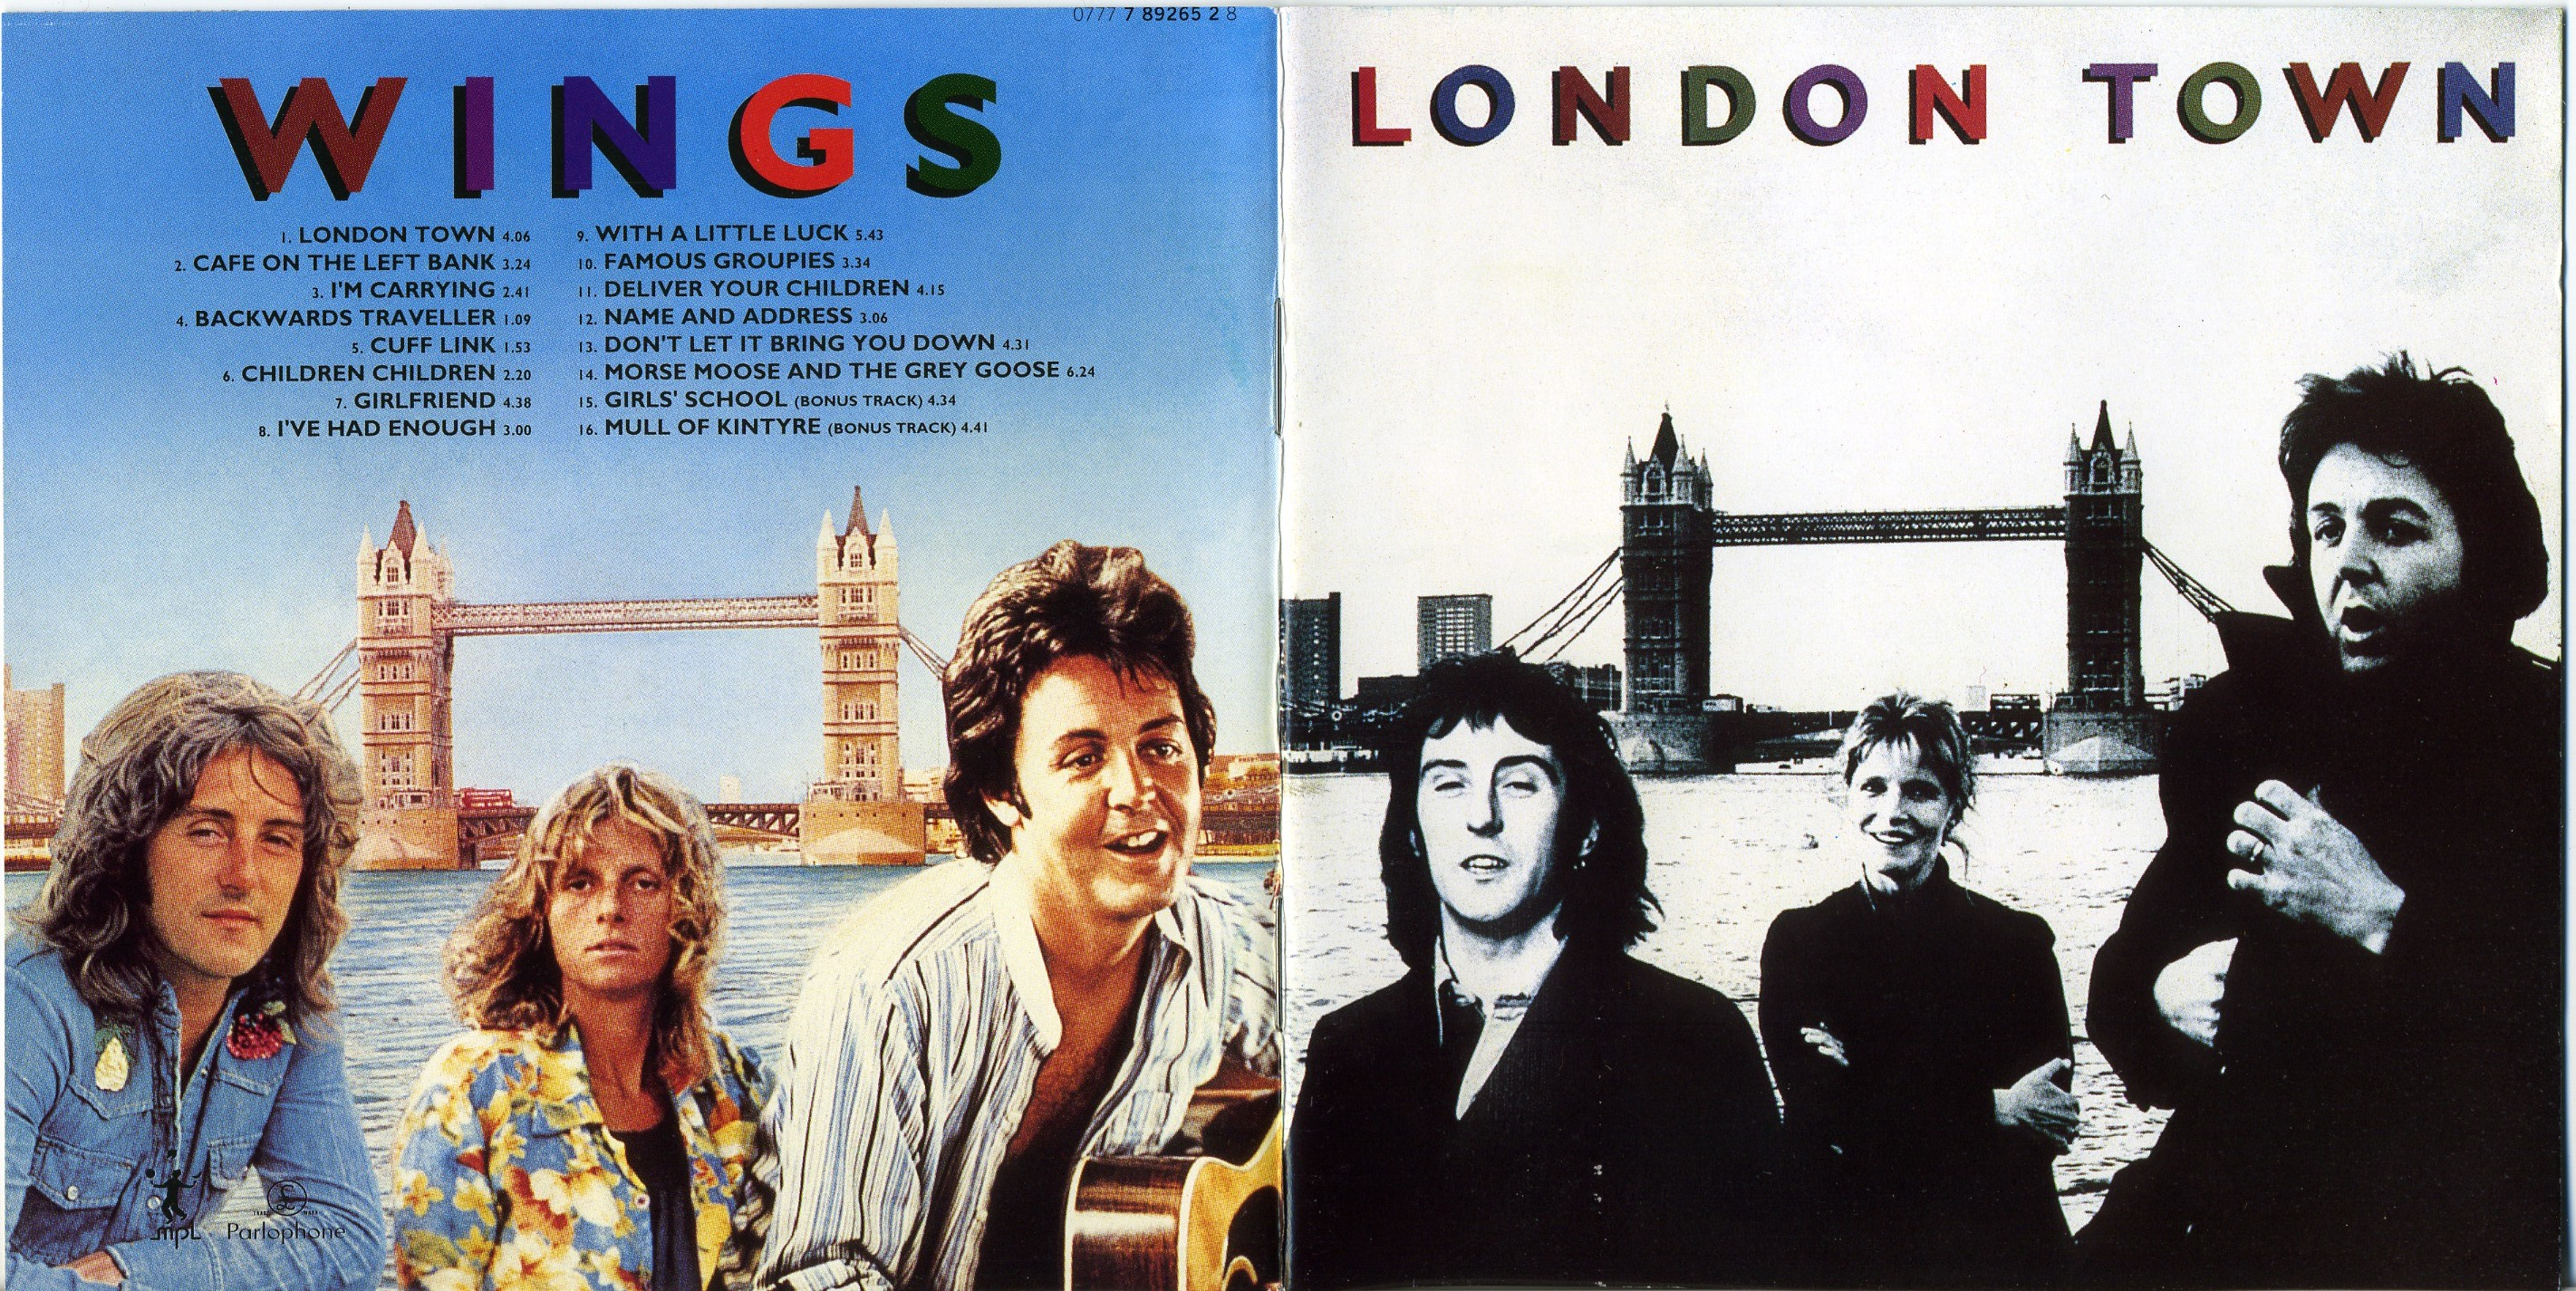 London Town, l'album le plus sous-côté de Paul McCartney